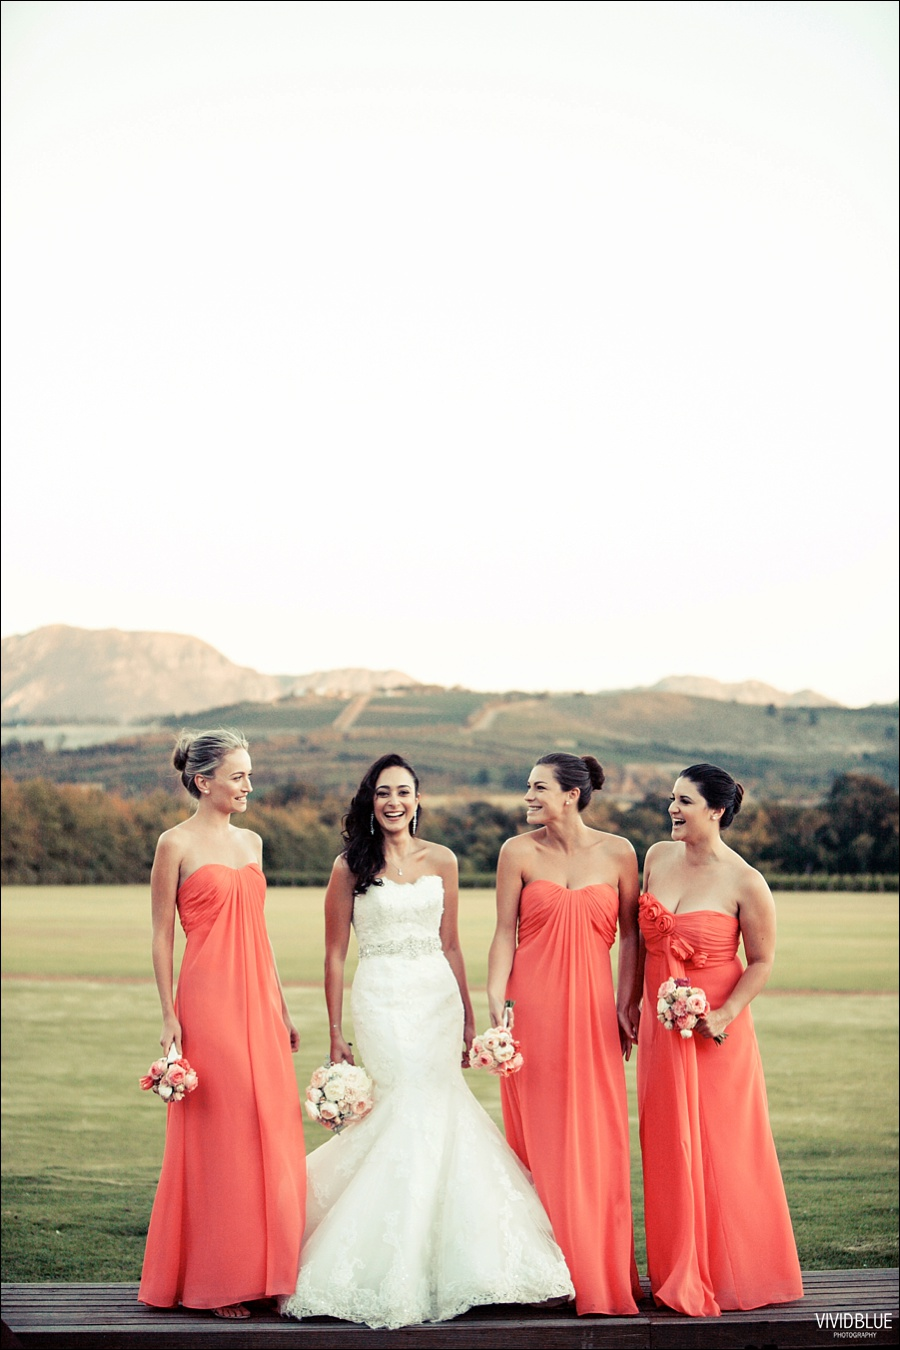 VIVIDBLUE-Ahmed_limia_wedding_lourensford_wedding_conconcepts_stylish053